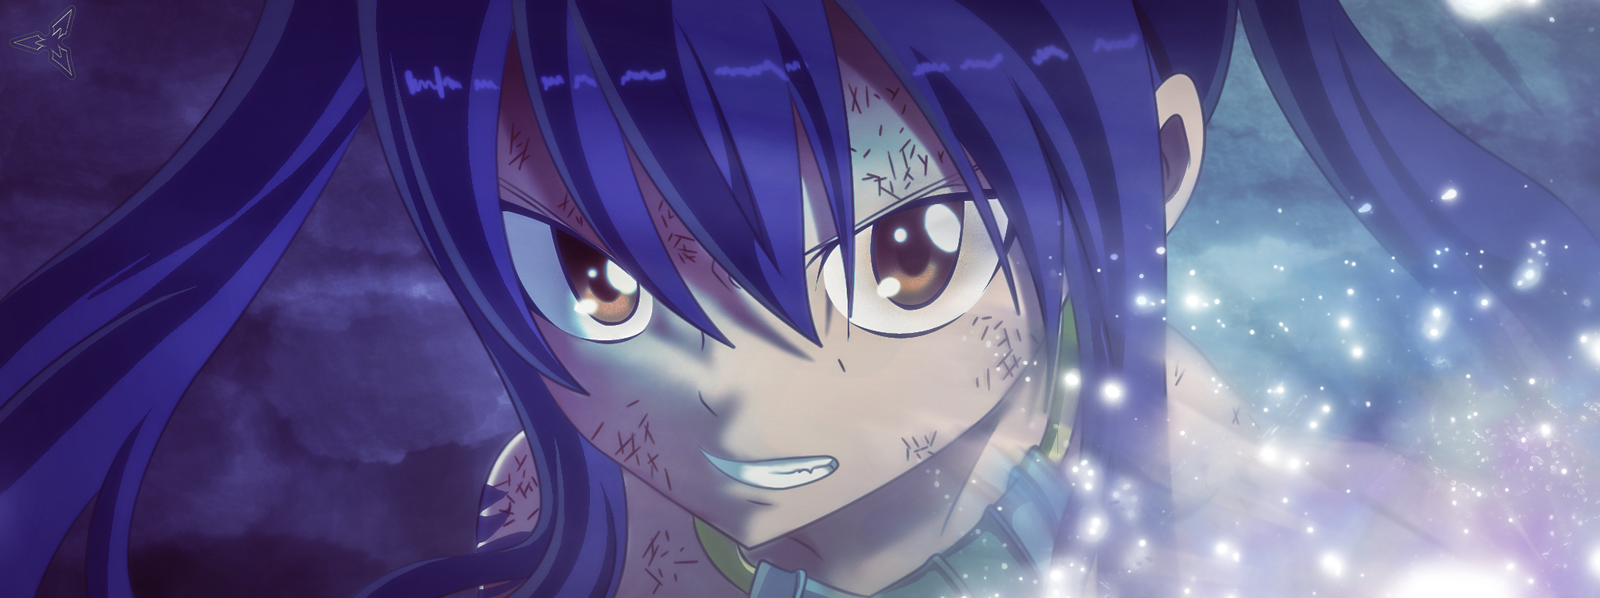 Wendy marvell fairy tail the sky dragon by thefastboost on deviantart - Wendy wallpaper ...